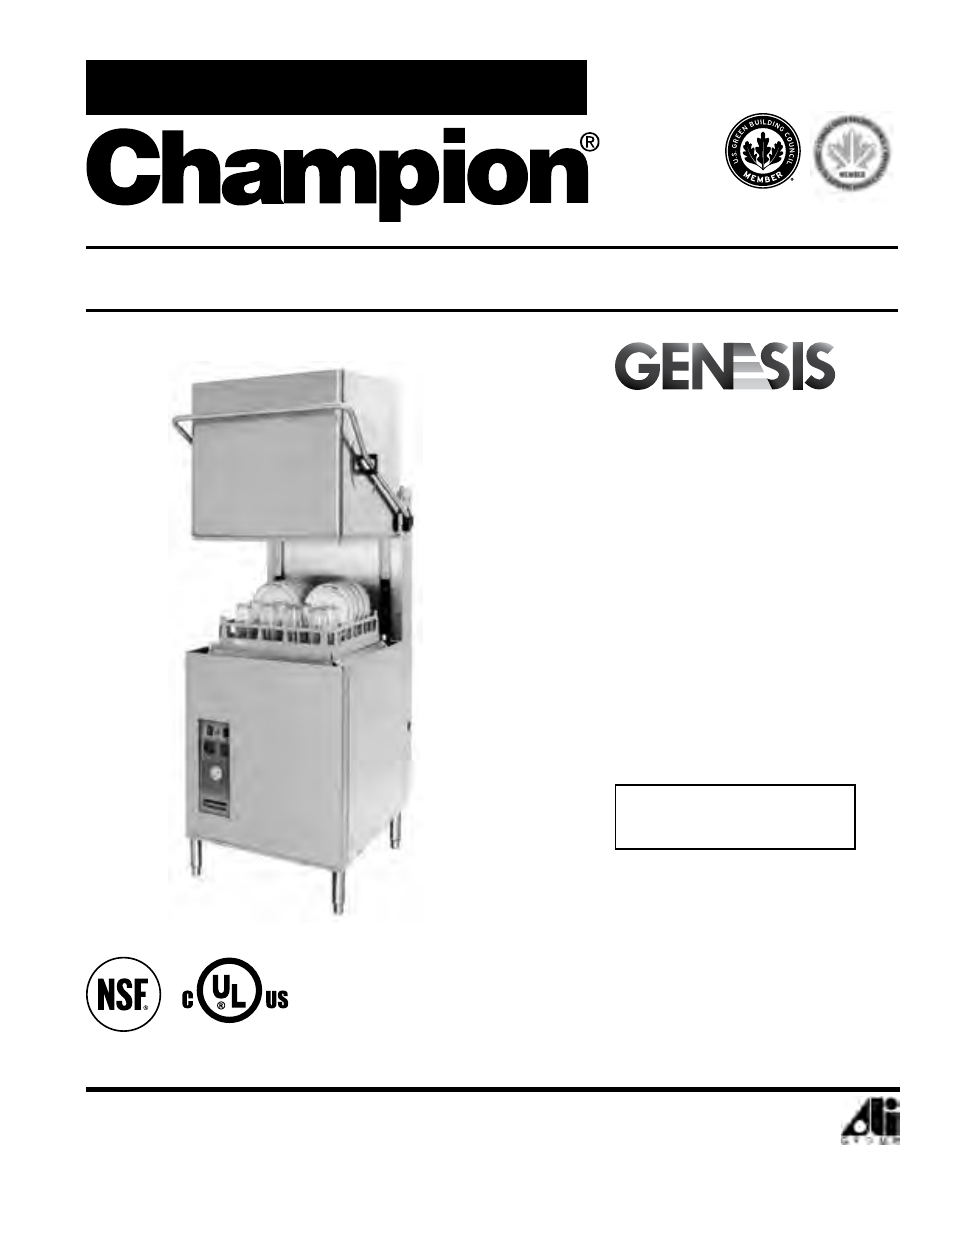 CHAMPION DH5000 Single Source Gas Door Machine Manual User Manual | 122  pages